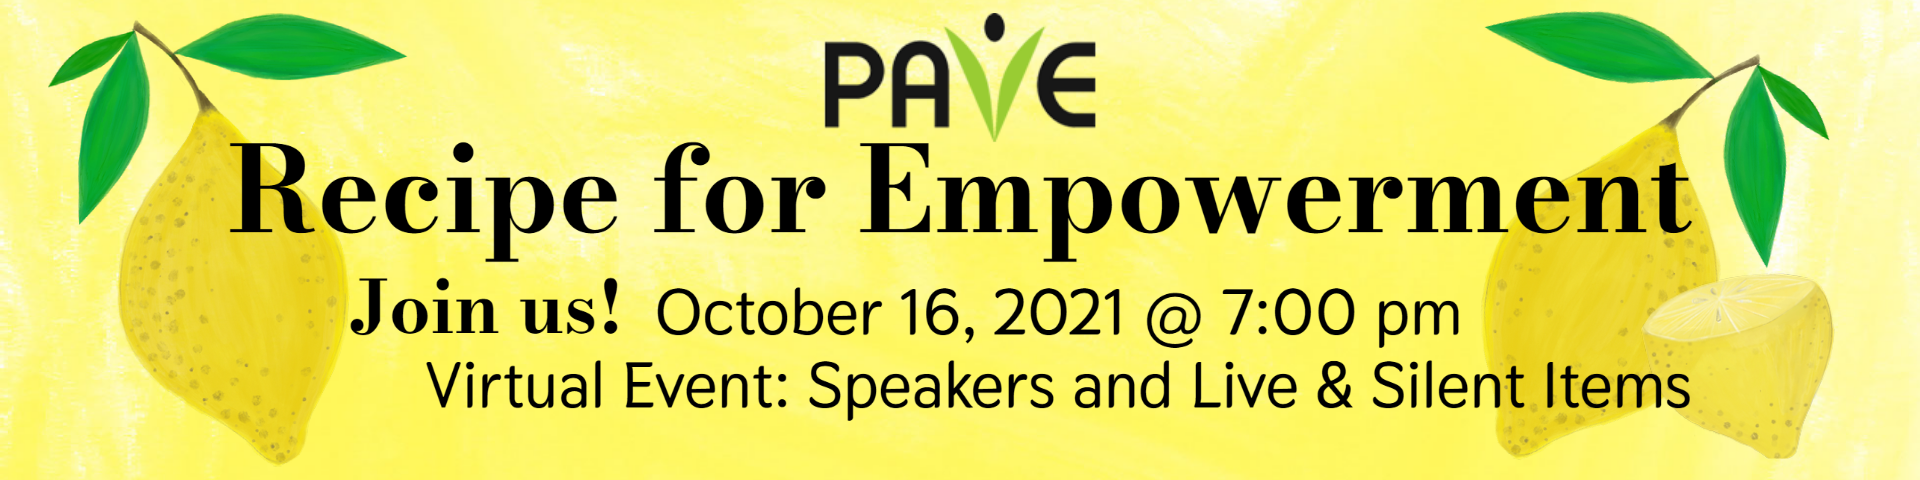 Two lemons surround the words Recipe for Empowerment event for October 16, at 7:00 pm